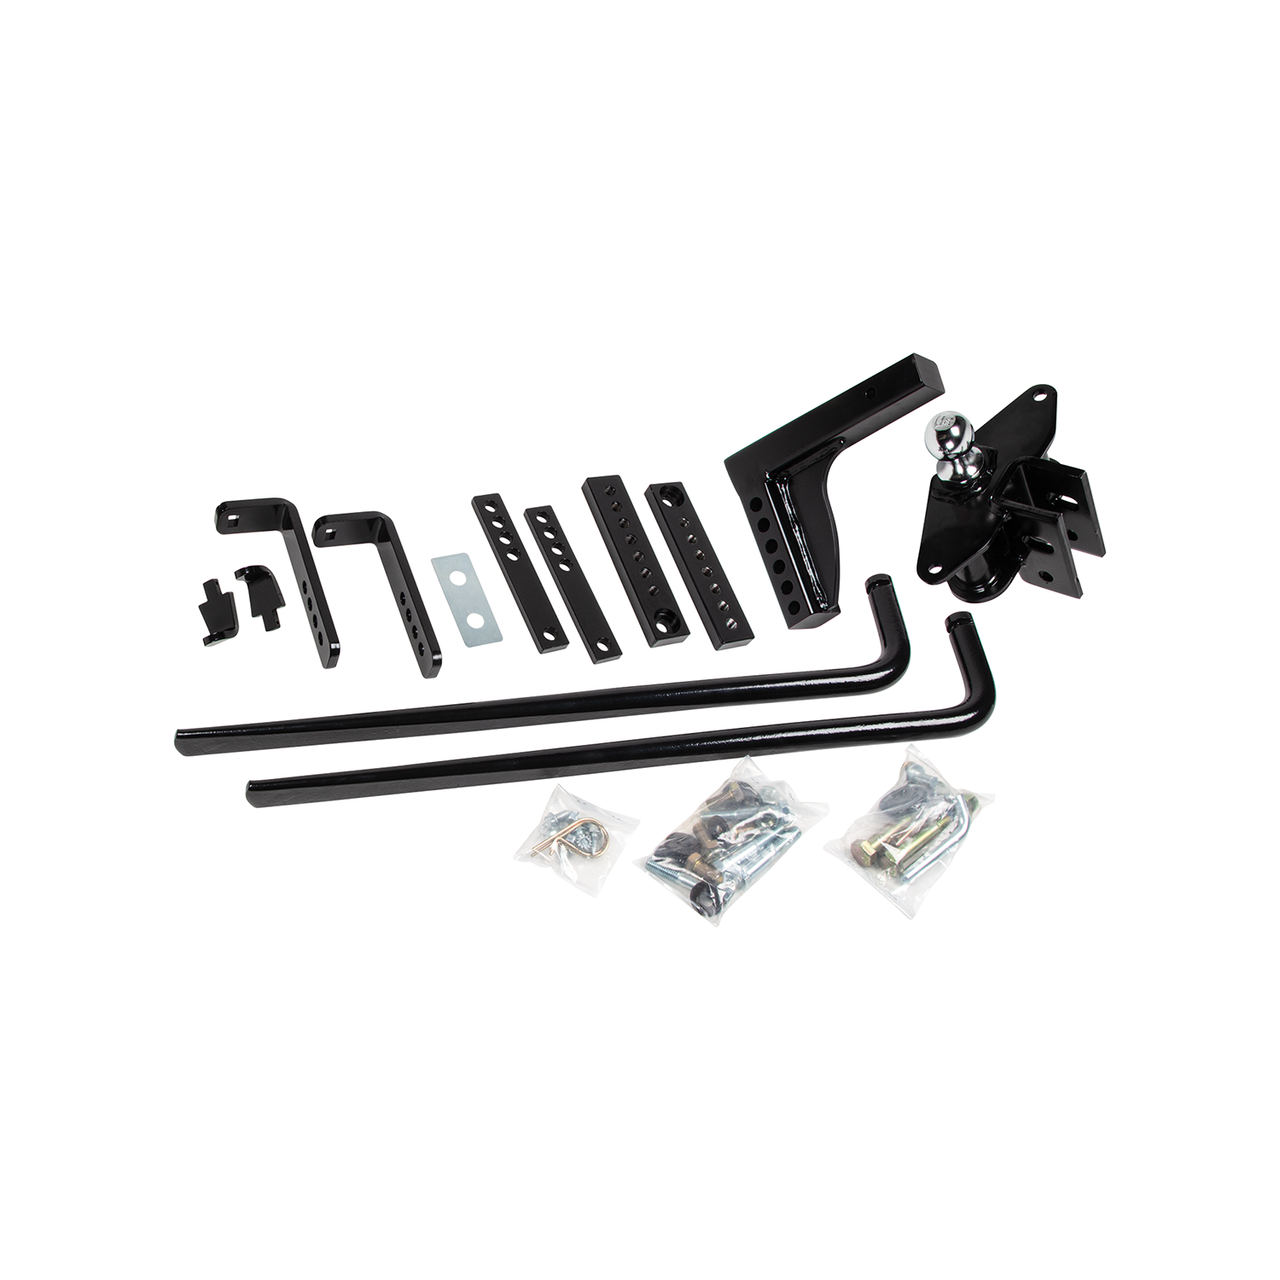 49911 --- Weight Distributing Hitch Kit w/Shank and Sway Control - 6,000lb